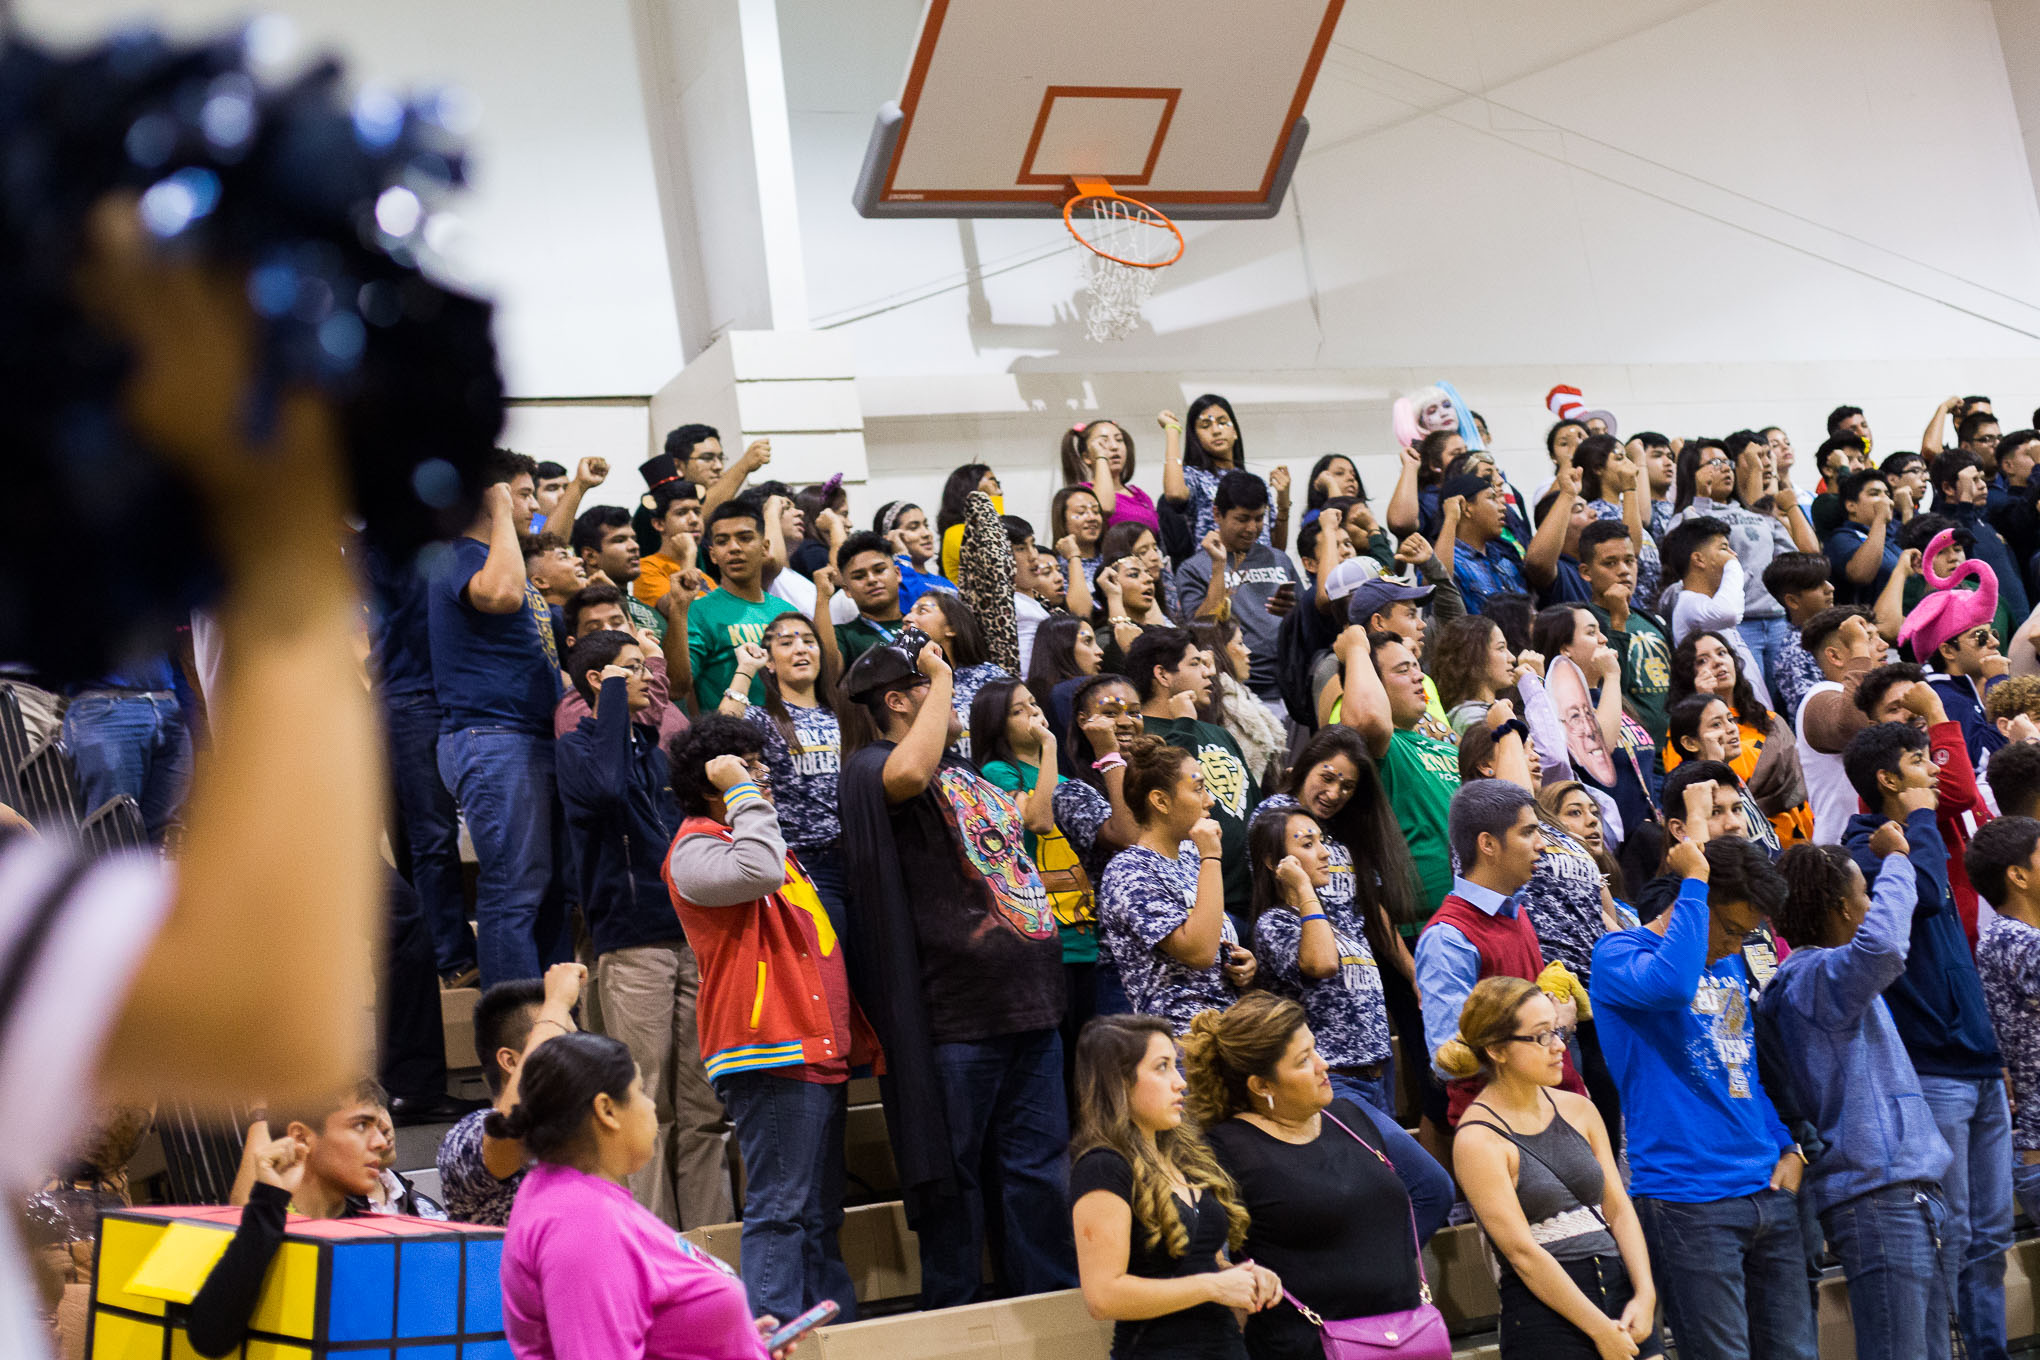 Joseph Pena cheers during a Halloween pep rally at school.